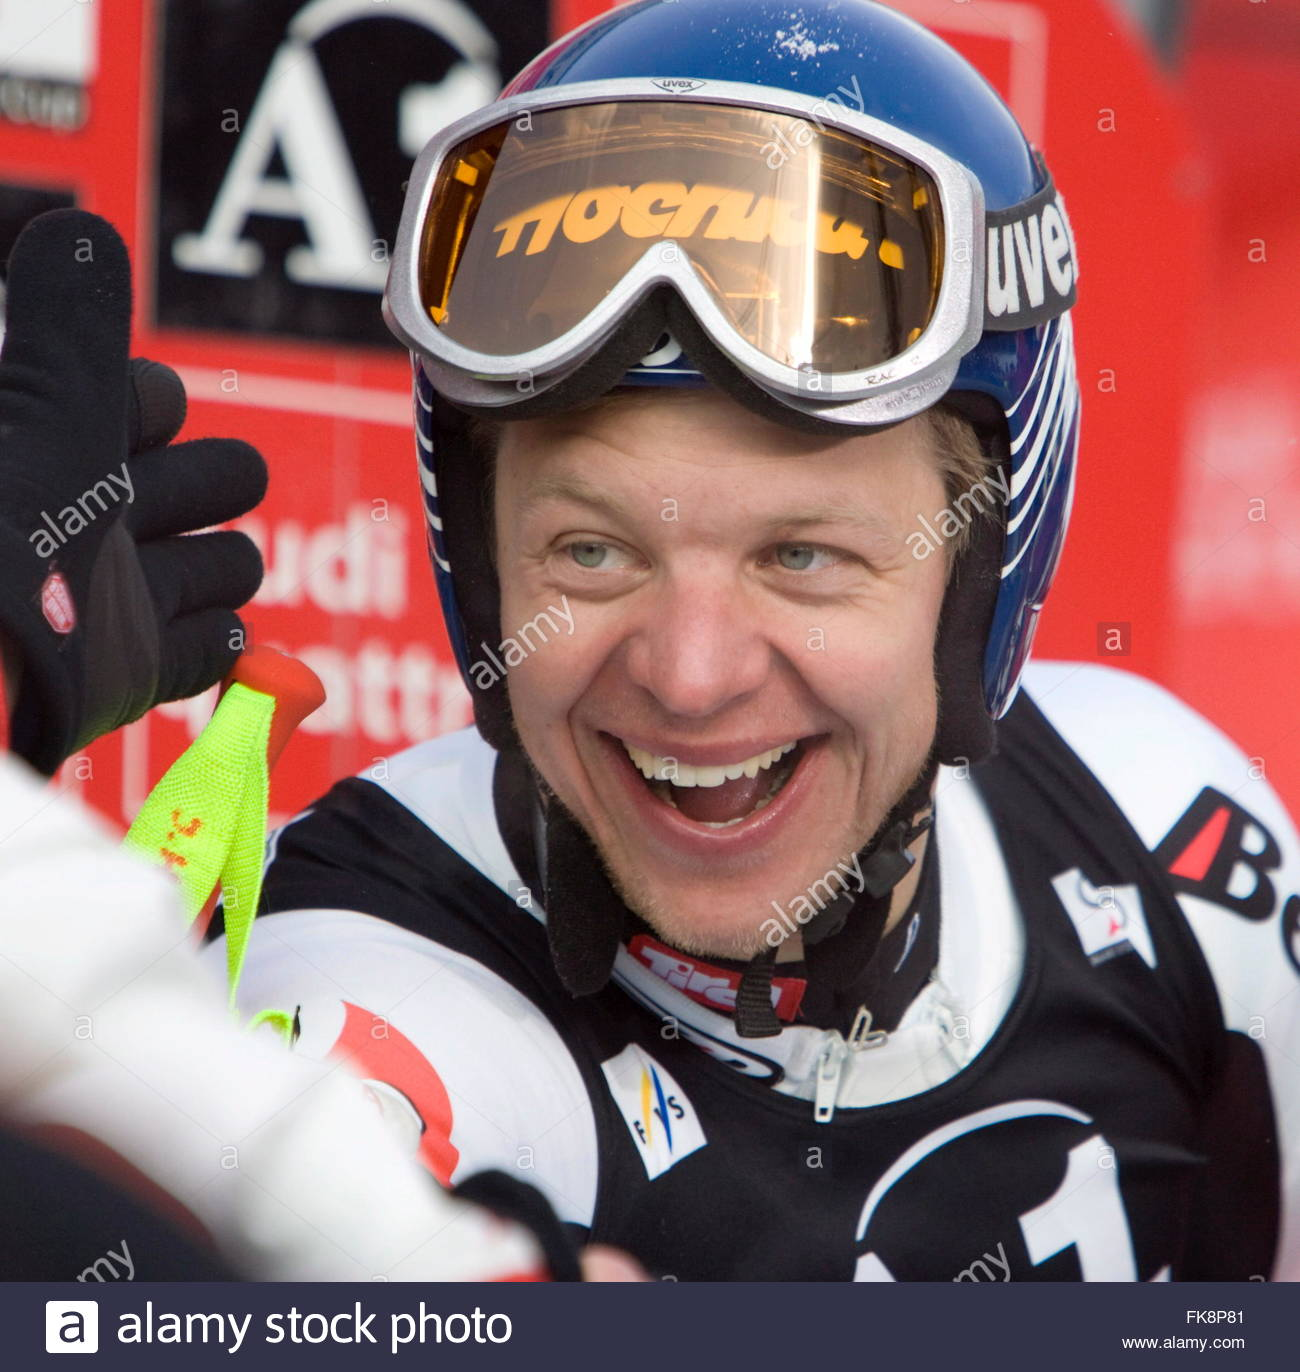 Andreas Buder of Austria smiles after his <b>third place</b> finish at the Men's ... - andreas-buder-of-austria-smiles-after-his-third-place-finish-at-the-FK8P81